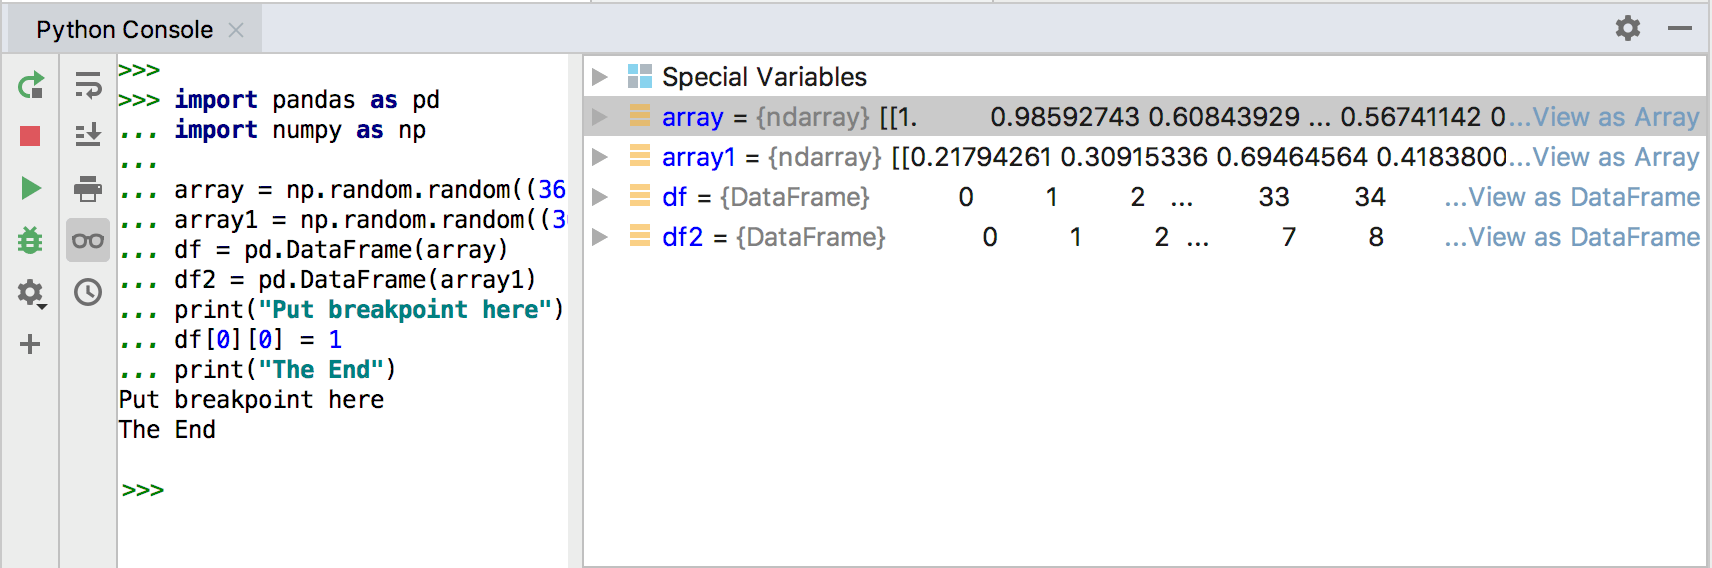 Viewing variables in array when running from Python console